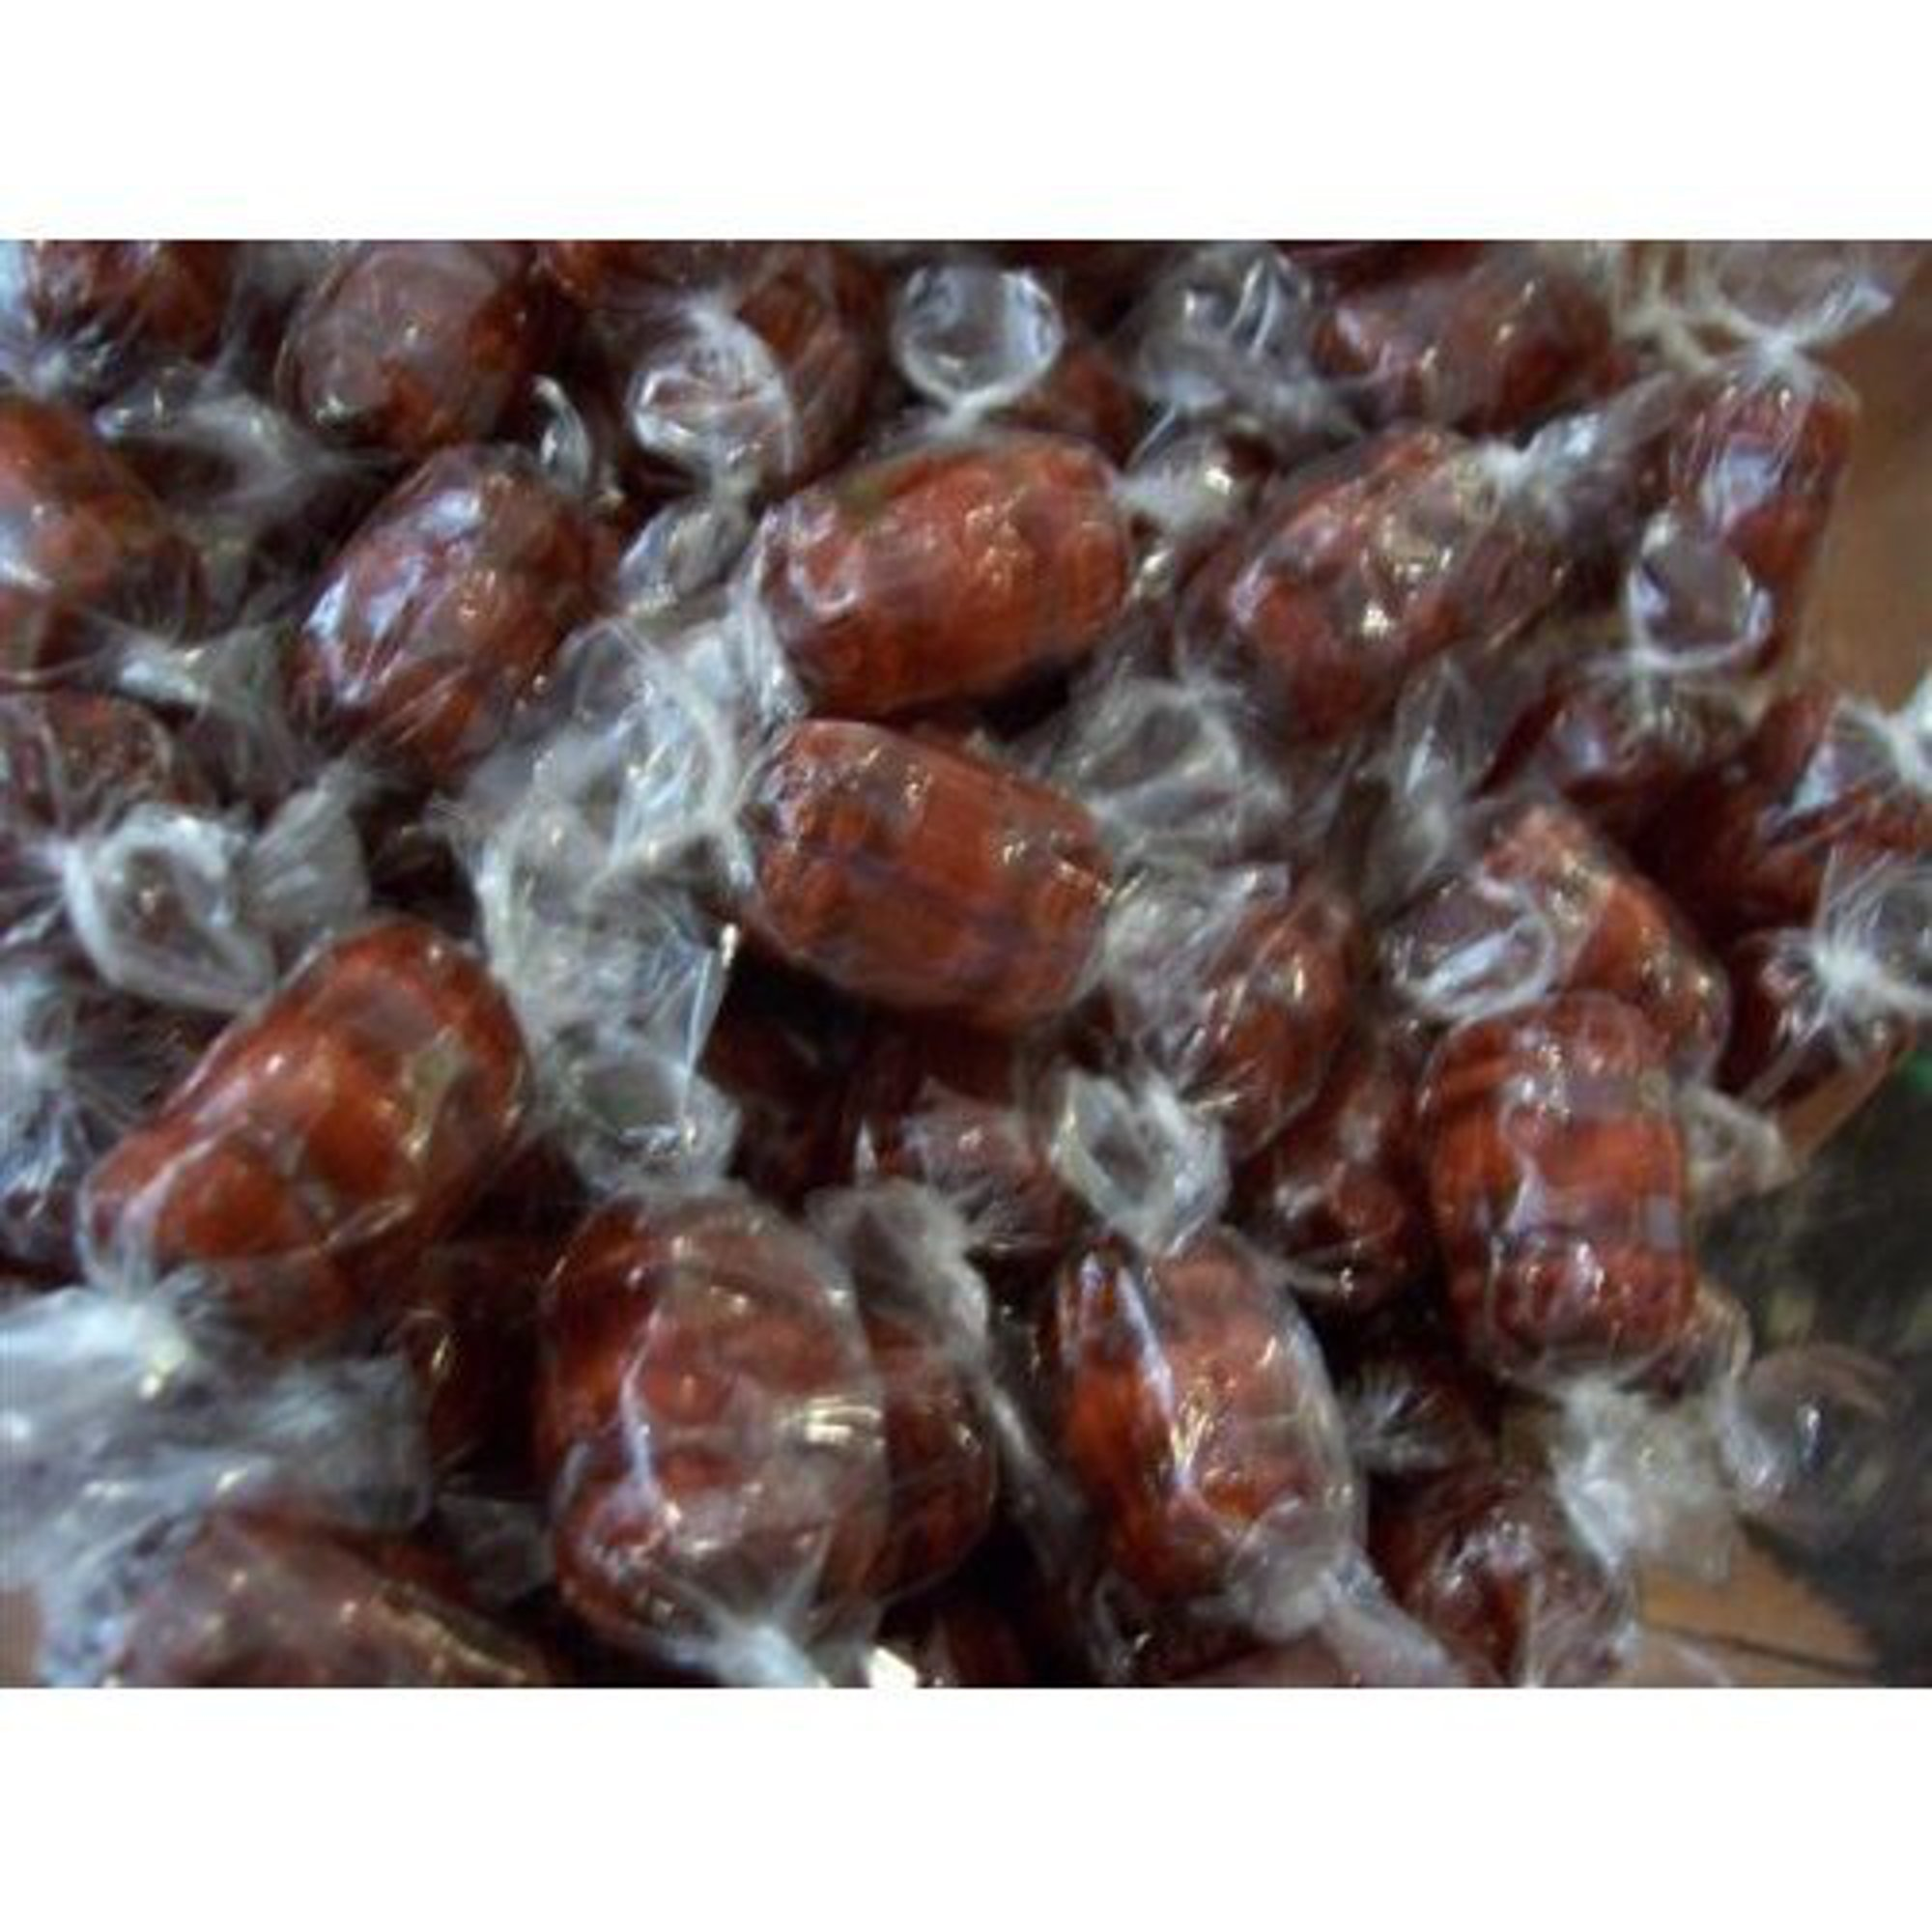 Quality Root Beer Barrels 2 Pound ( 32 OZ ) By Candy Korner by Candy Korner